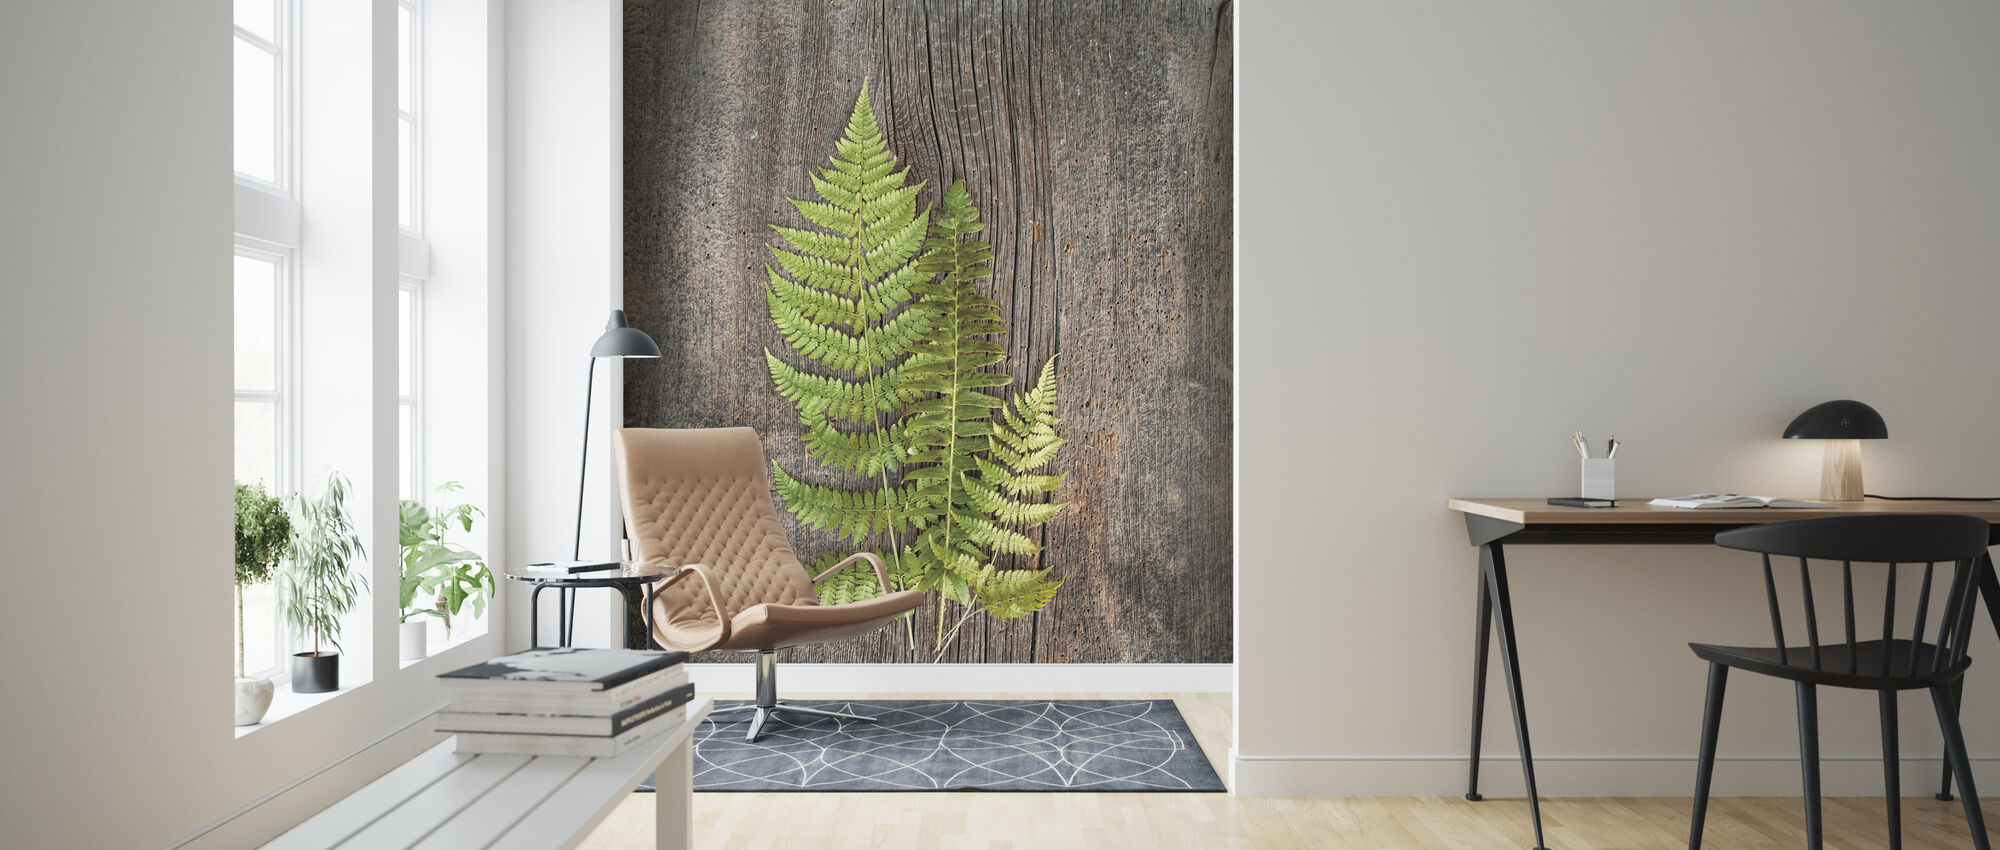 Woodland Fern - Wallpaper - Living Room